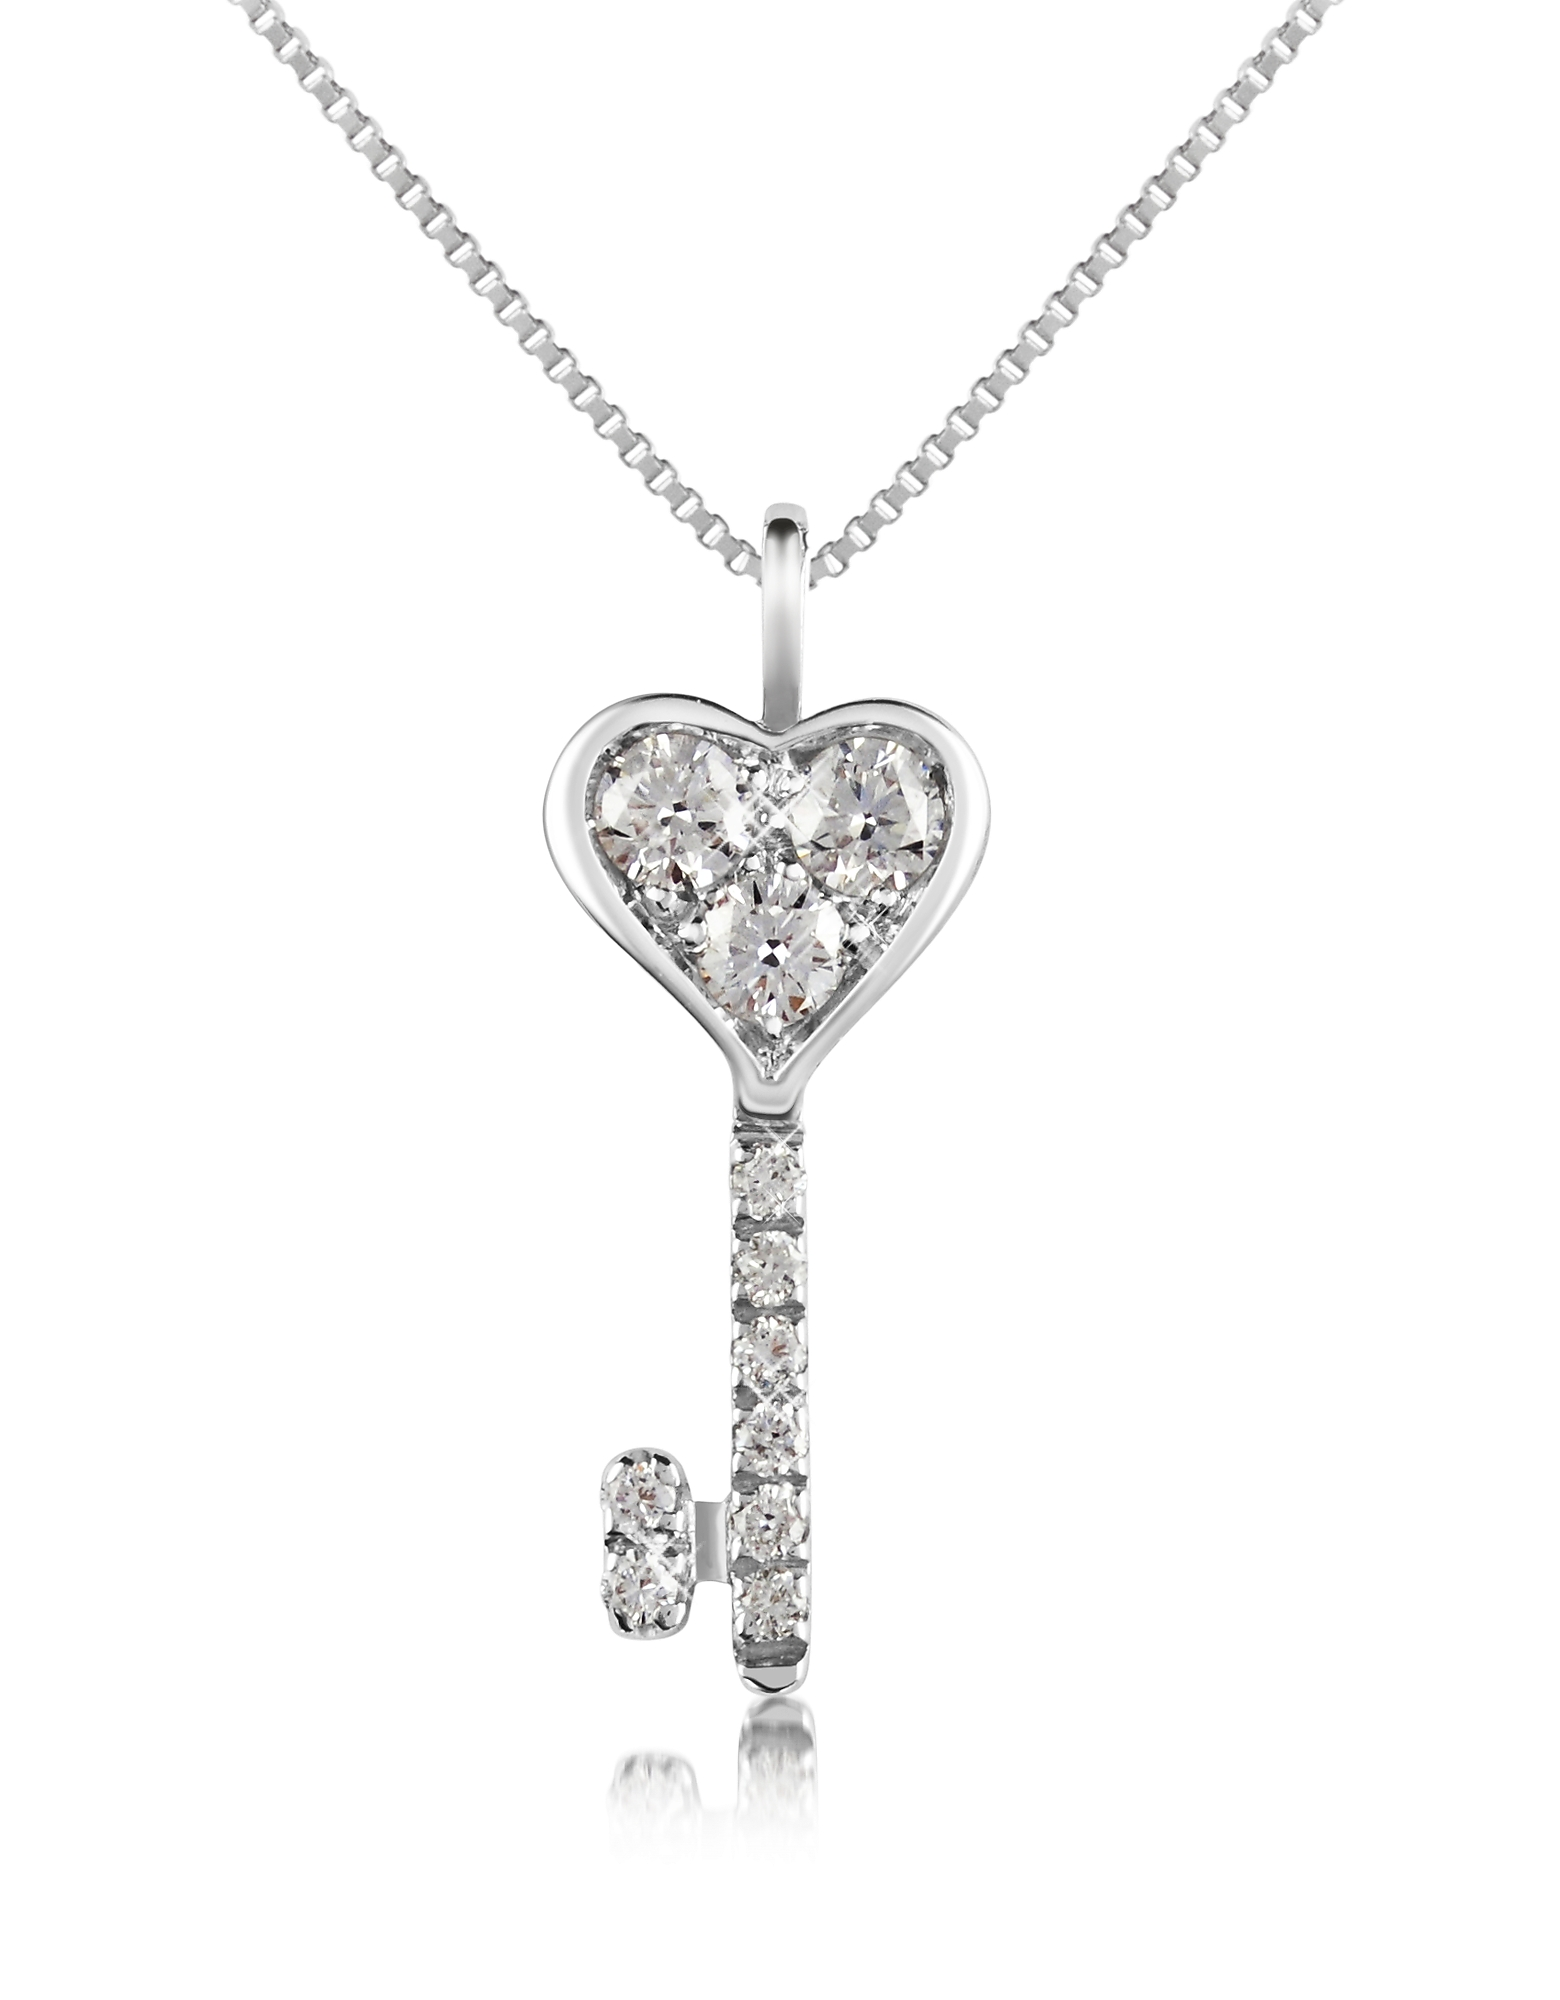 Forzieri Necklaces, 0.41 ct Diamond Key Pendant Necklace